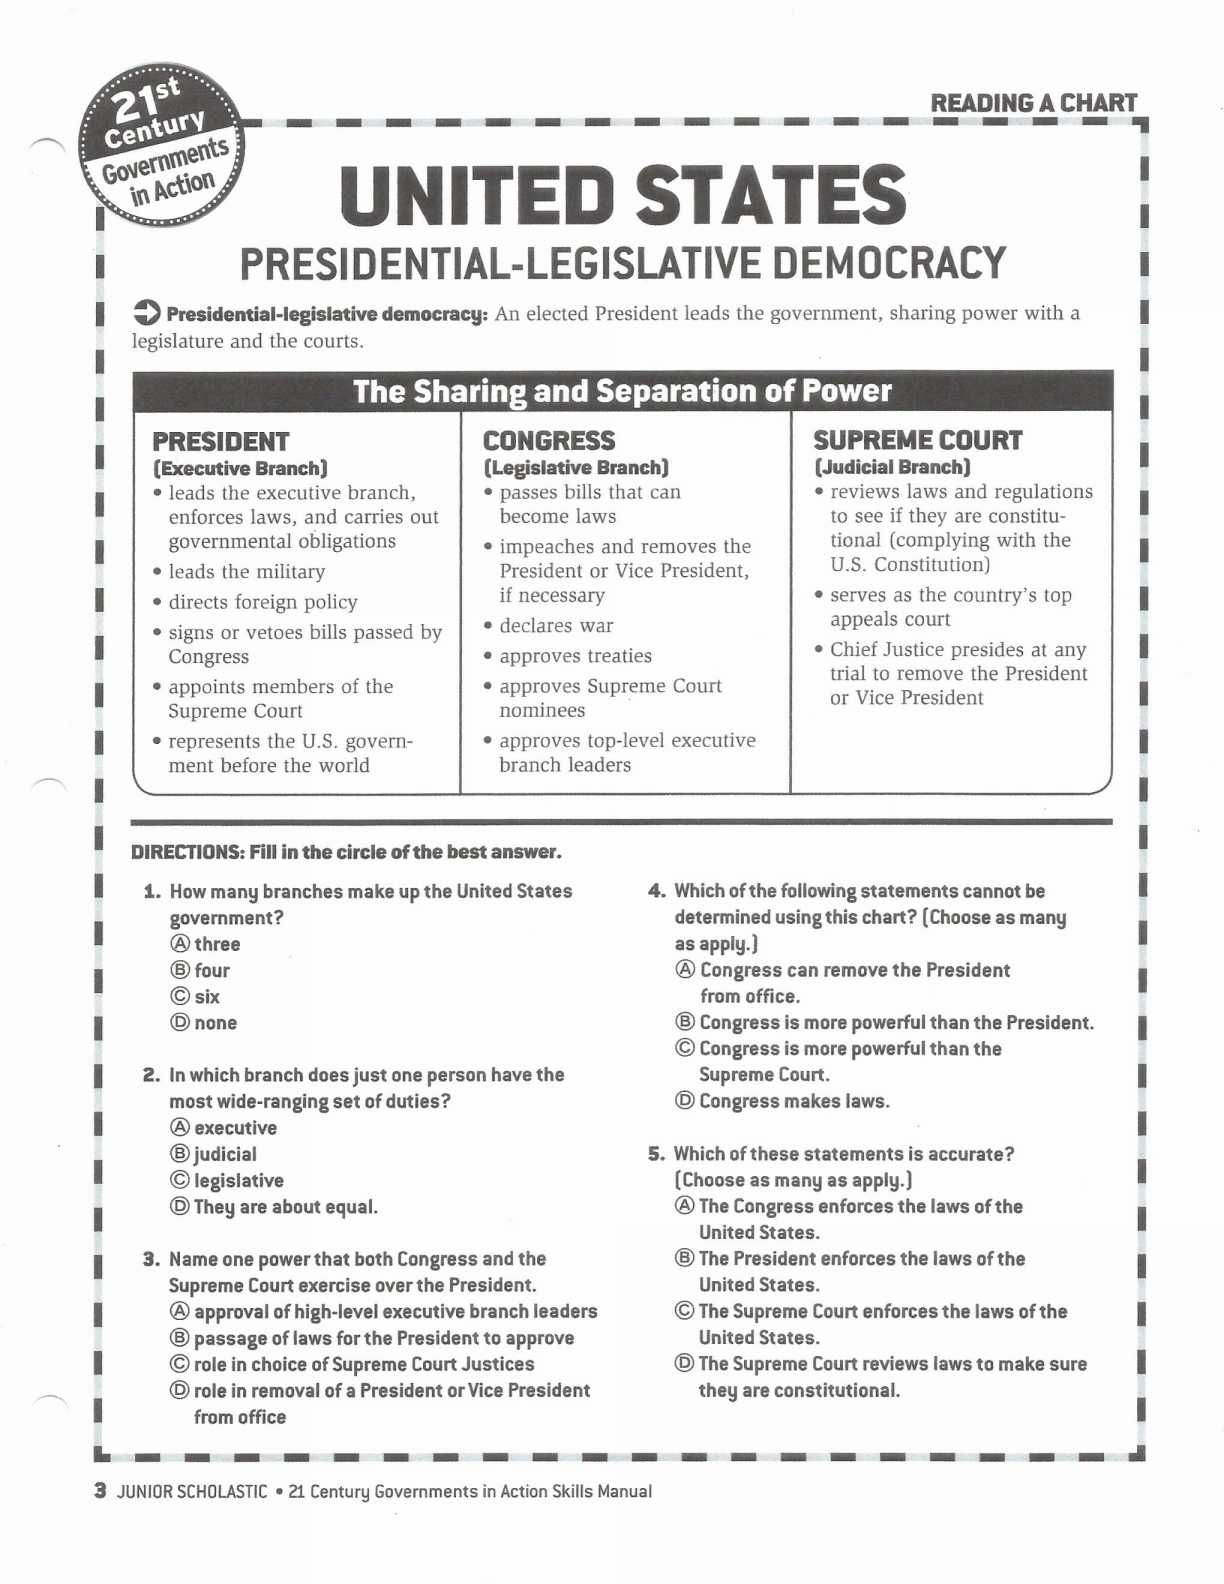 Worksheet The Legislative Branch Answer Key